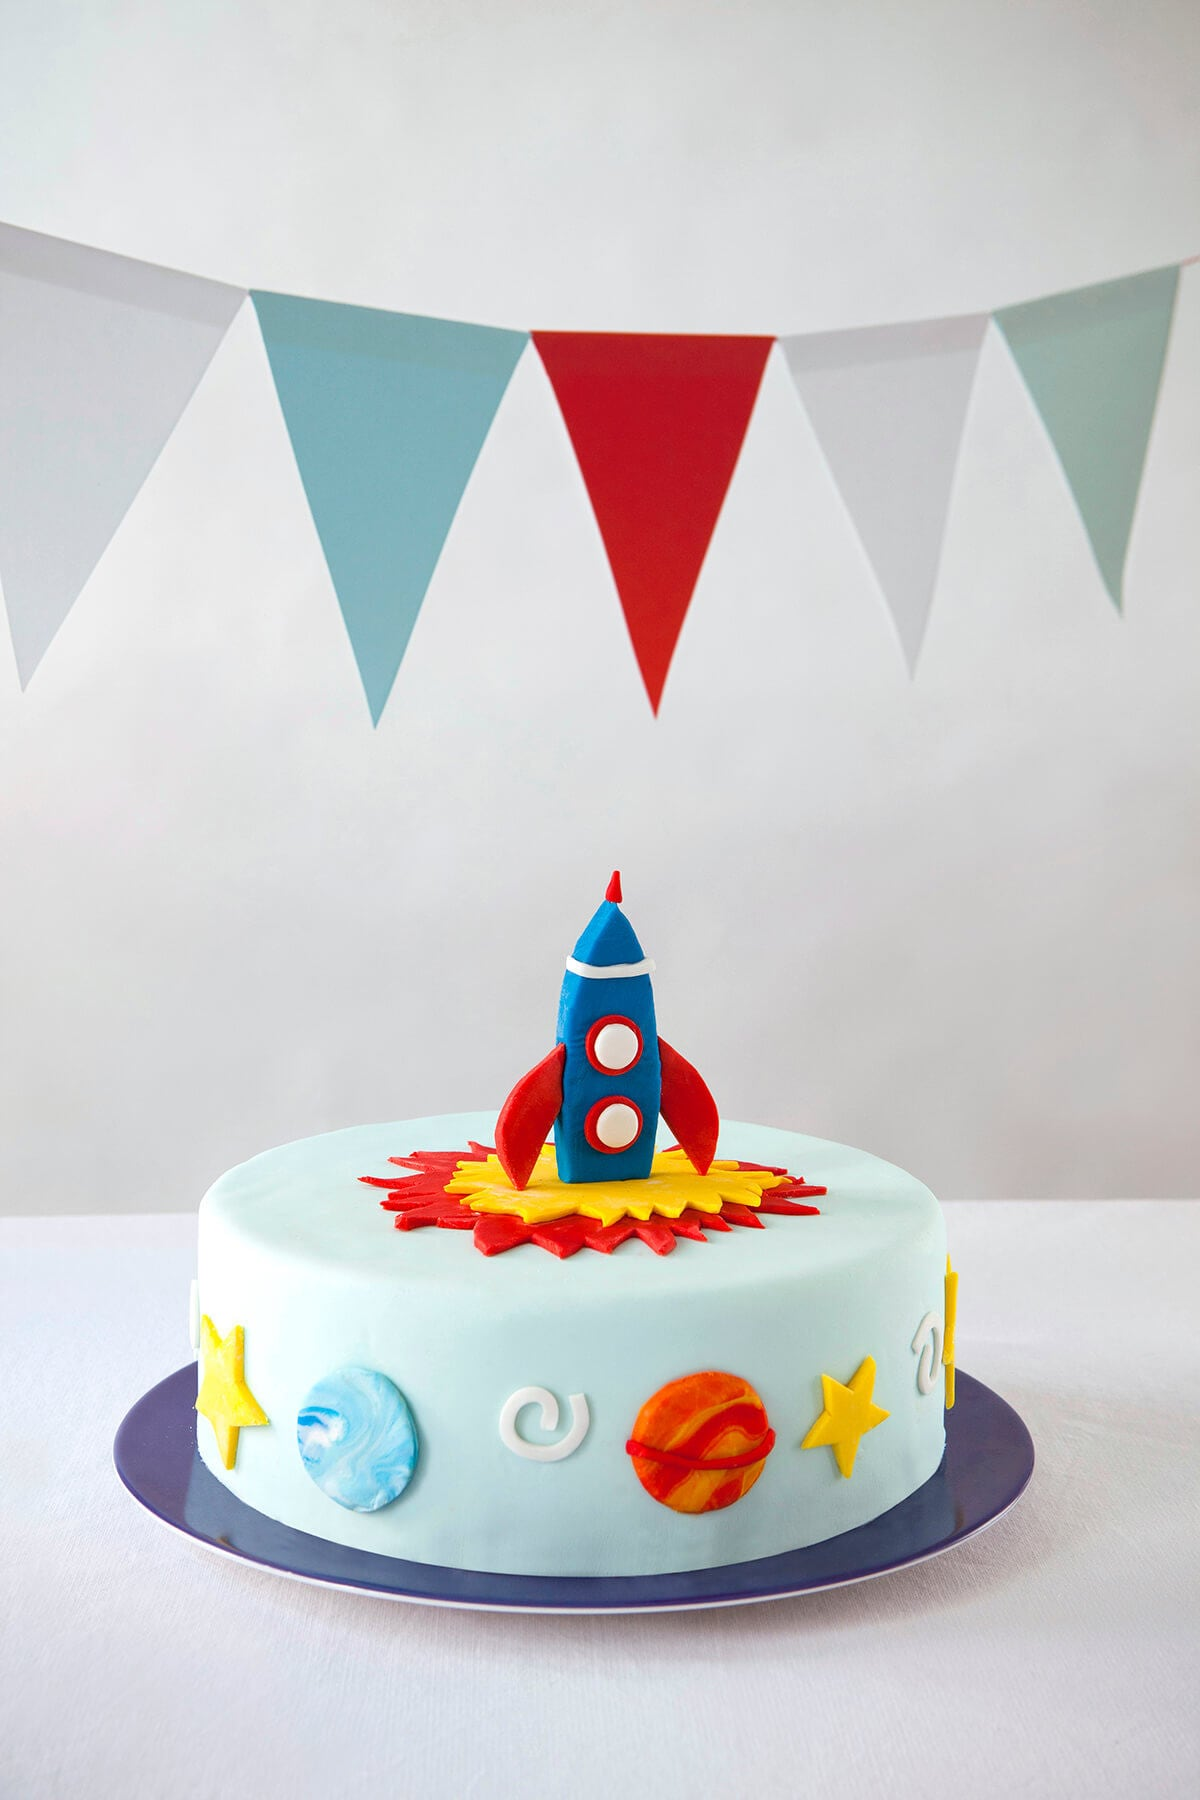 Incredible Cakest Co Diy Rocket Cake Kit Ingredients Decorating Tools Etsy Funny Birthday Cards Online Alyptdamsfinfo